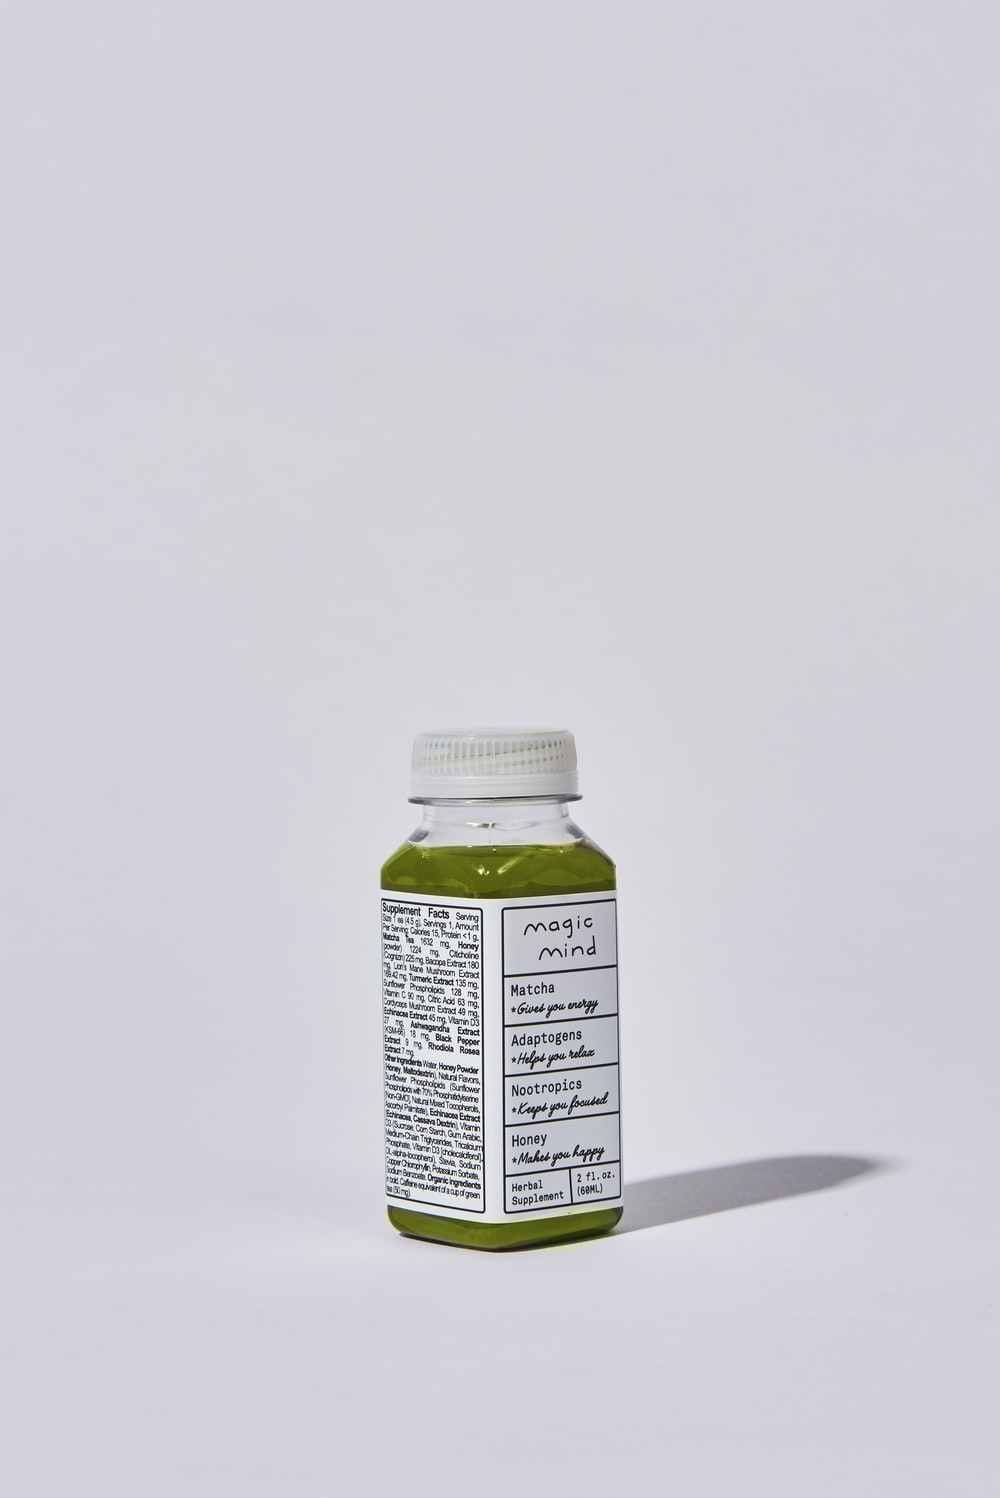 white and green labeled bottle